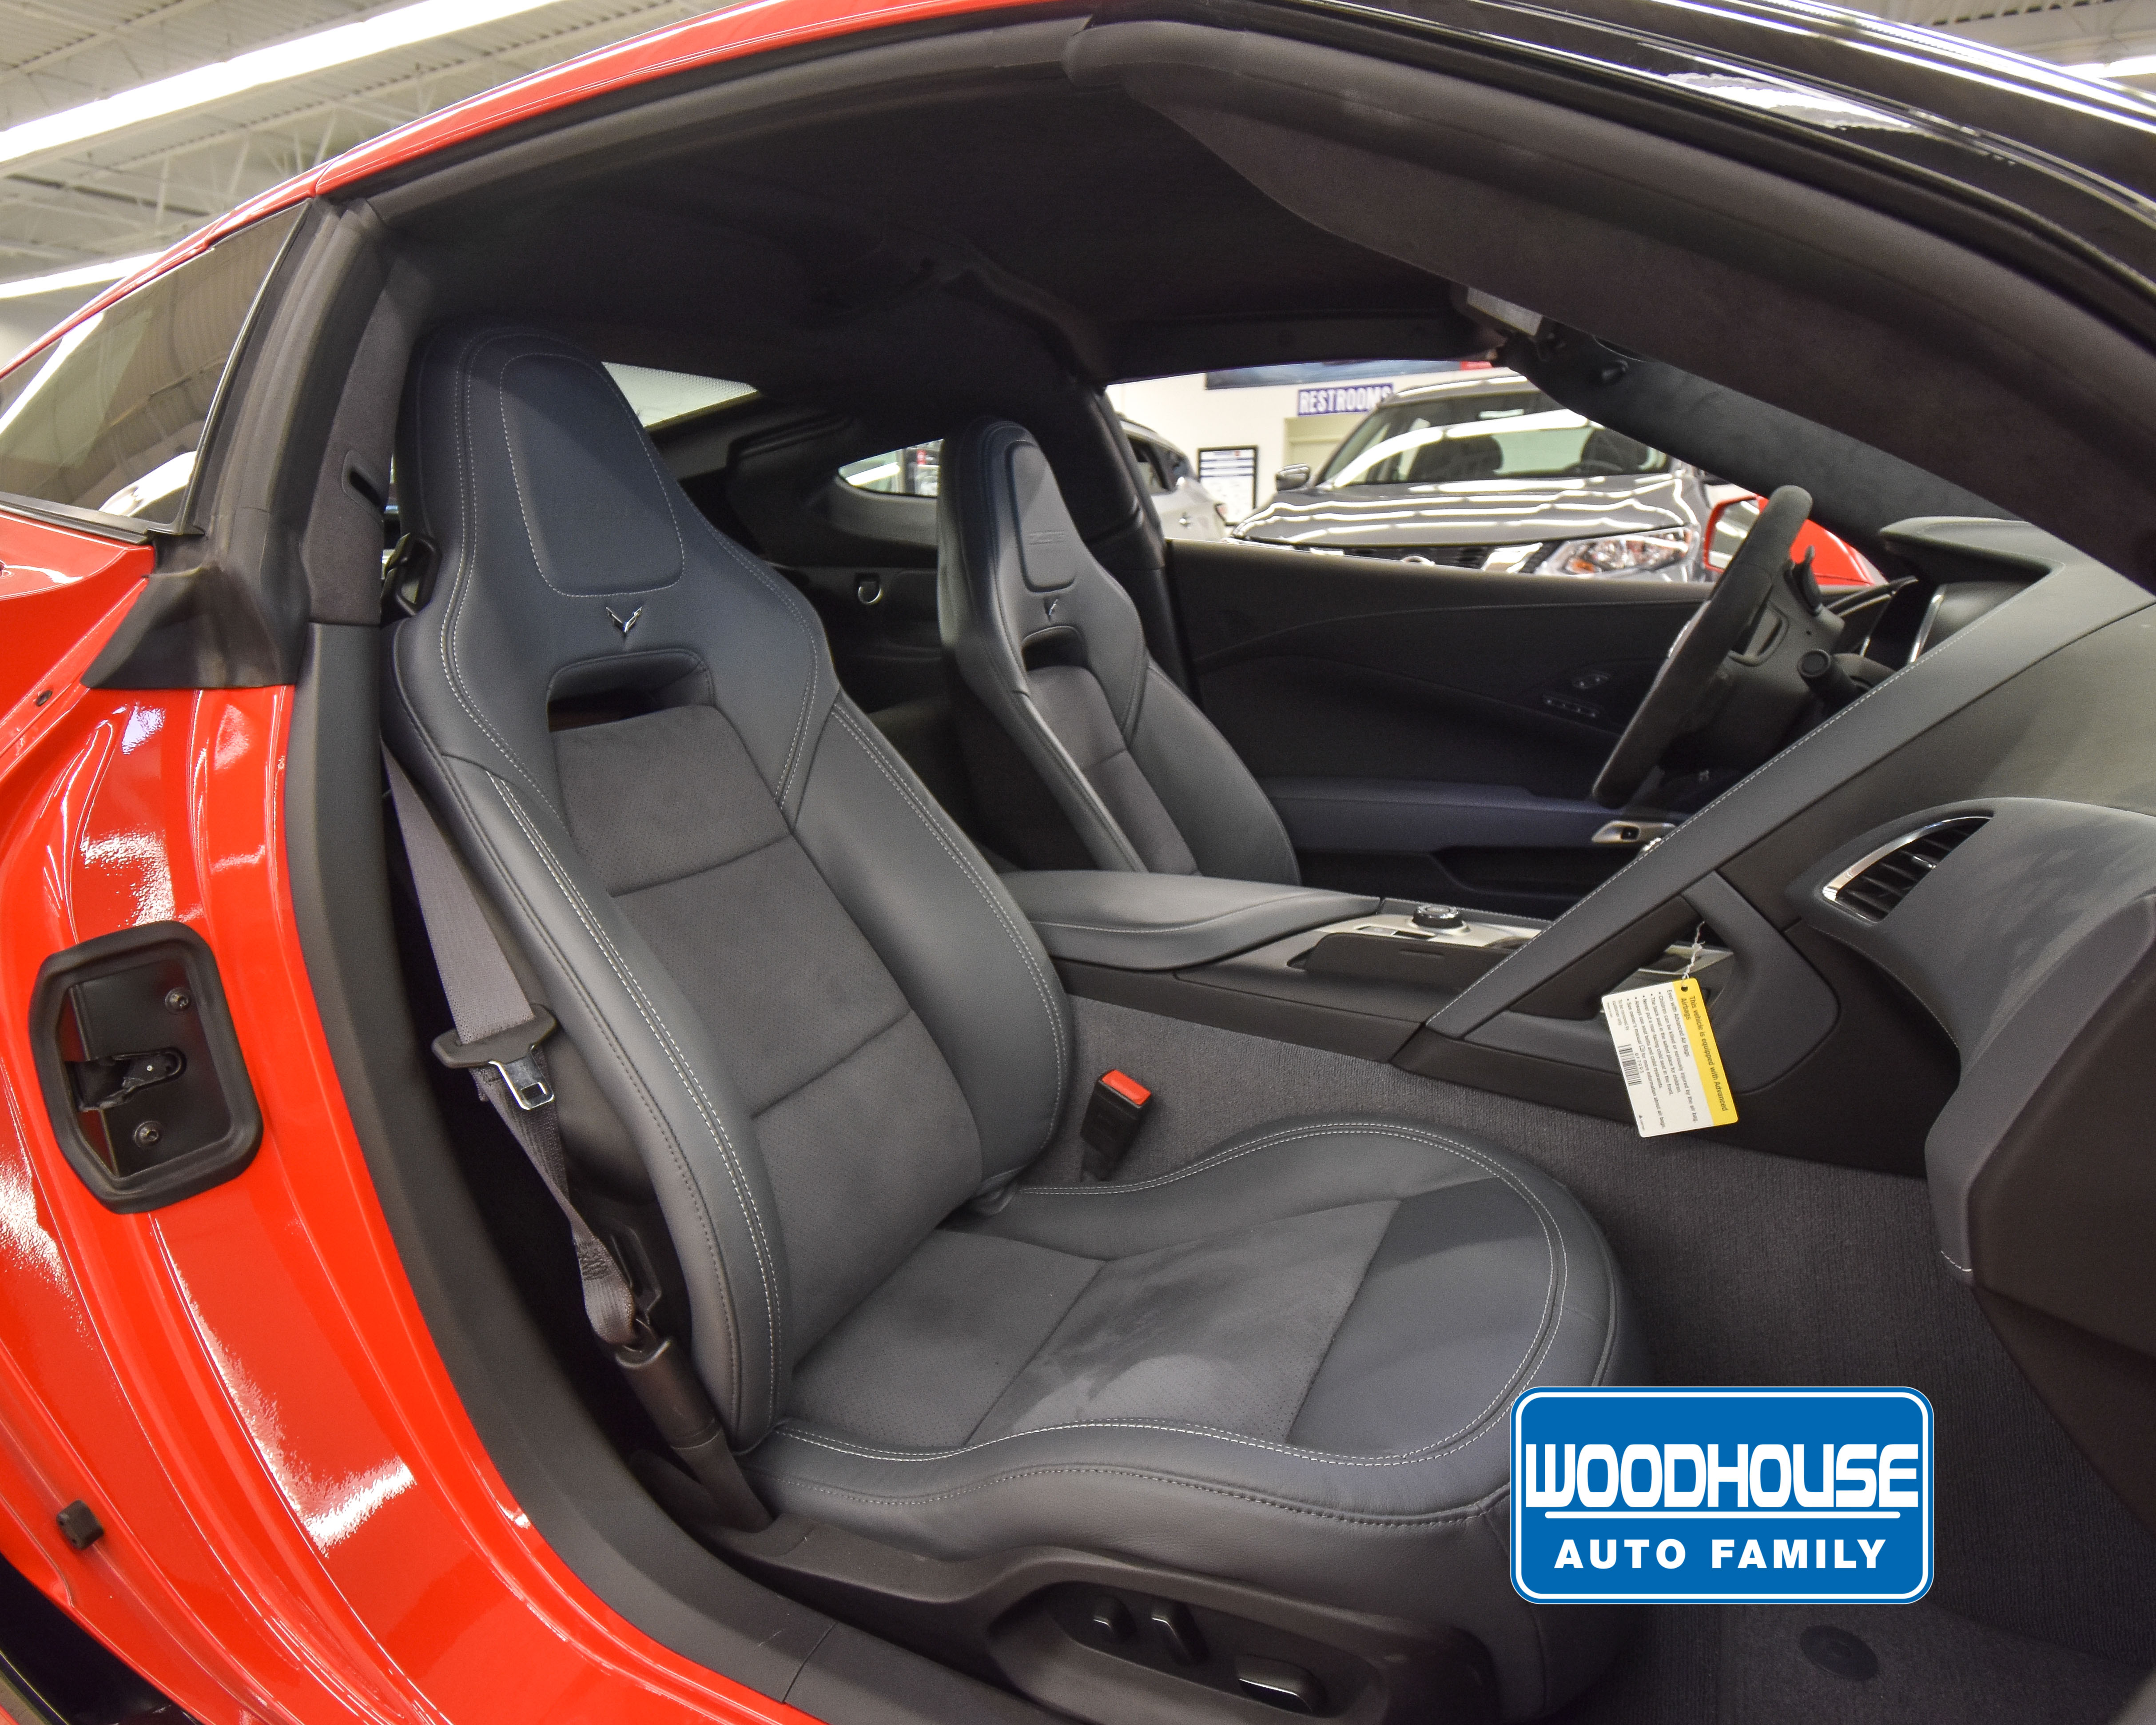 Woodhouse Hyundai Omaha >> Woodhouse | Used 2017 Chevrolet Corvette For Sale | Nissan (Woodhouse